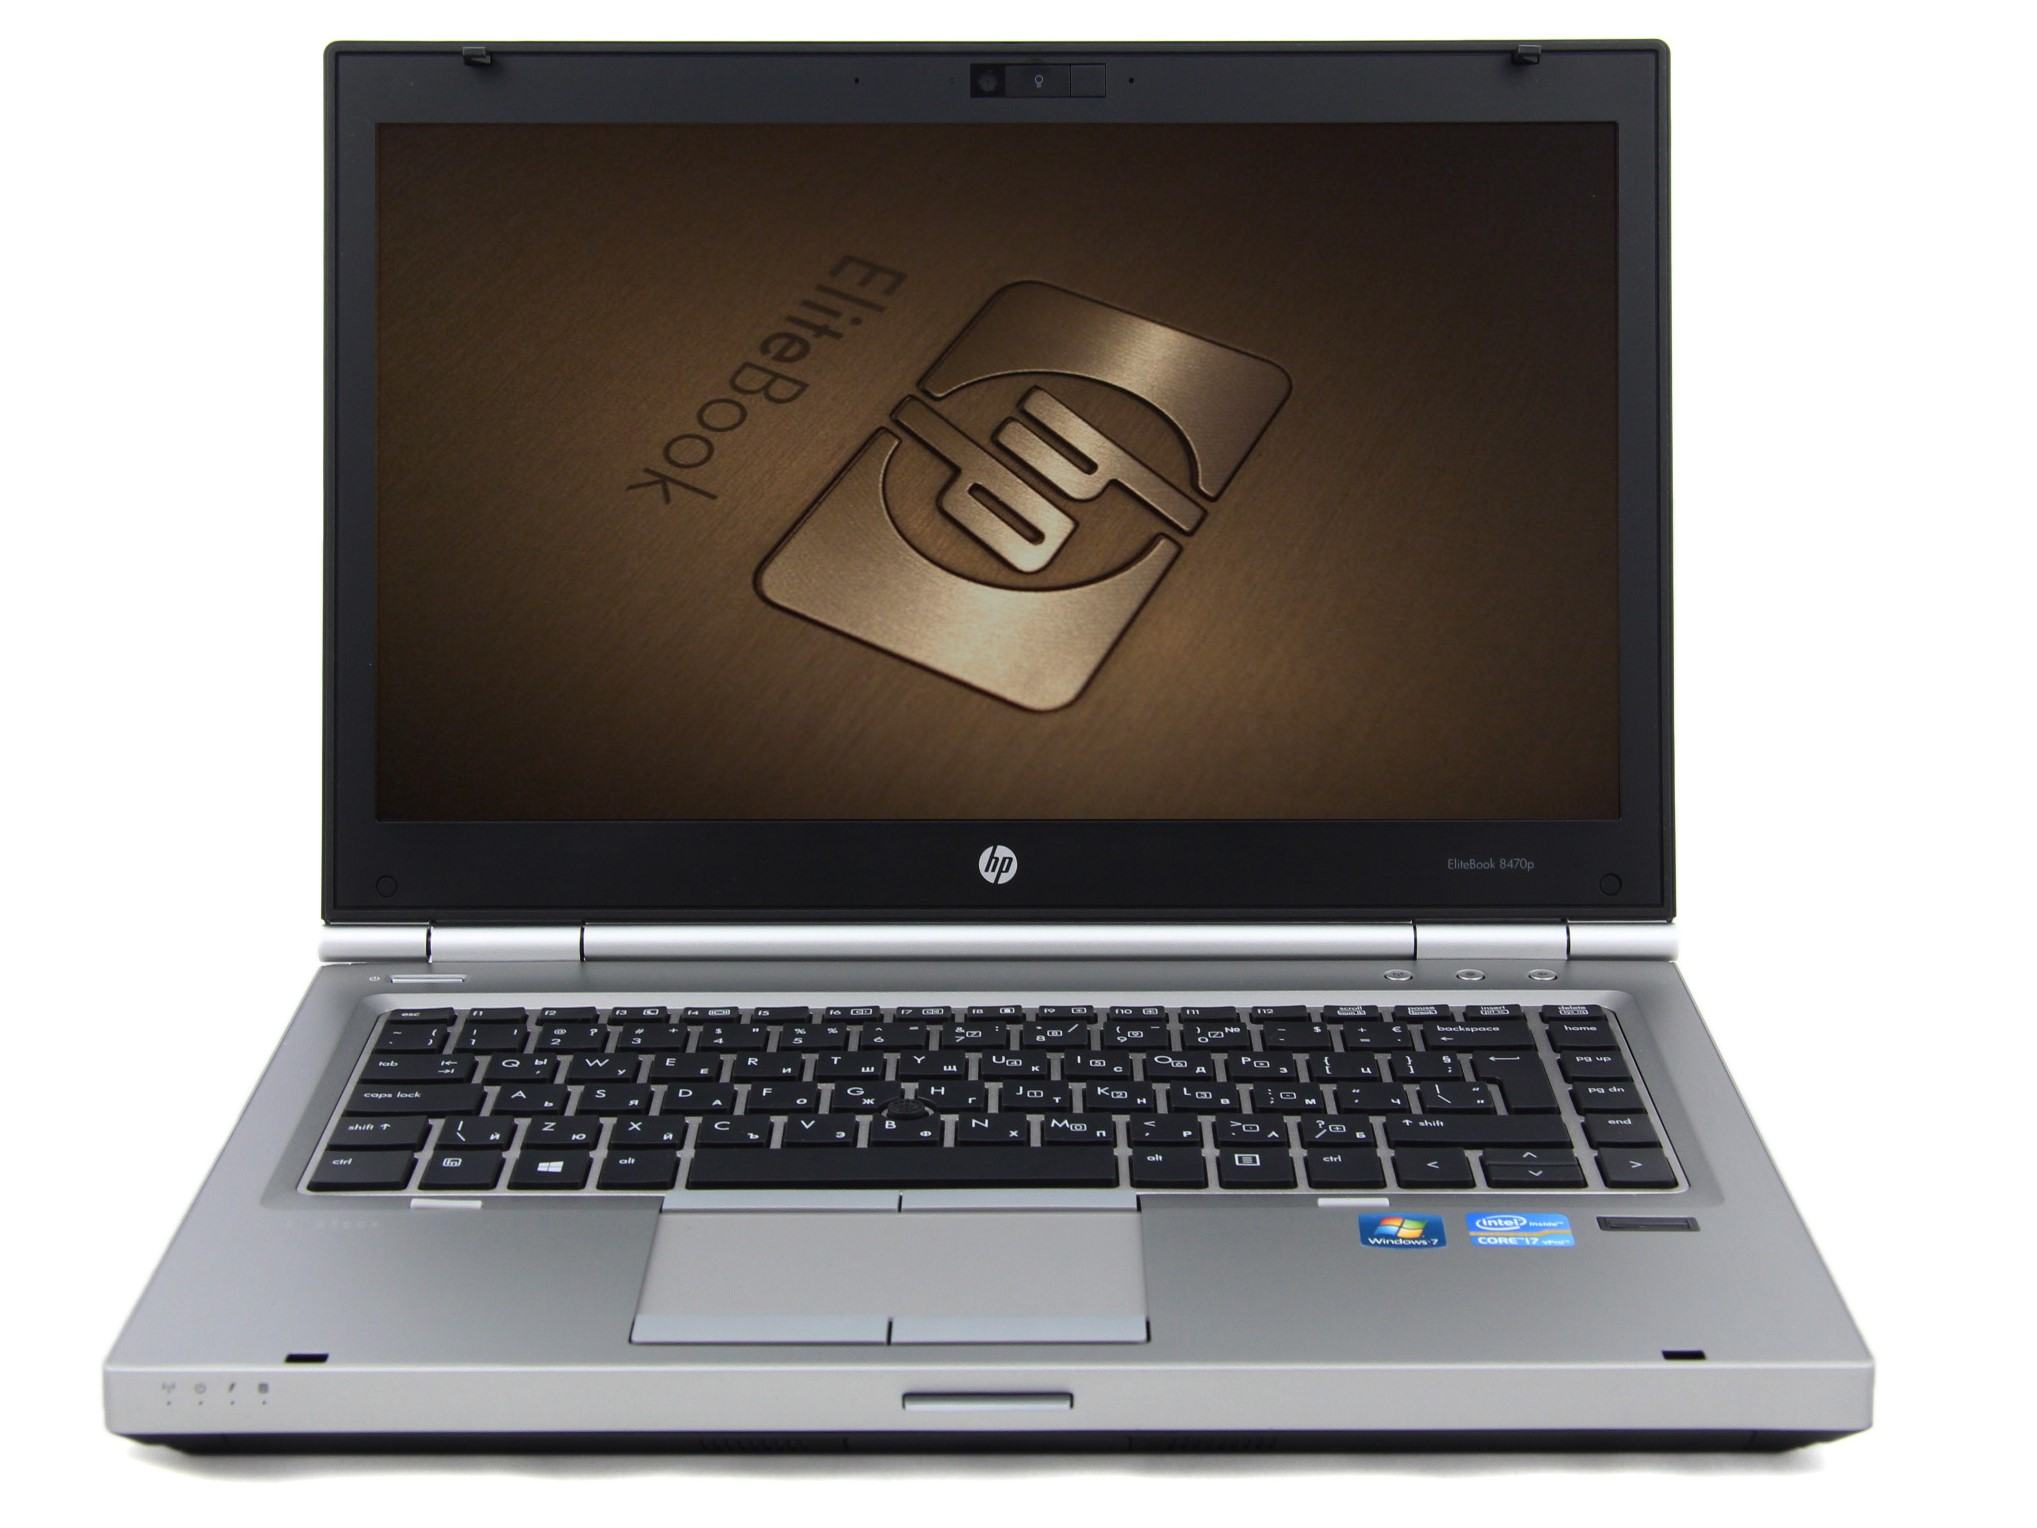 Elitebook 8470p / i5 2,80GHz / 4GB / 500GB / WIN 10